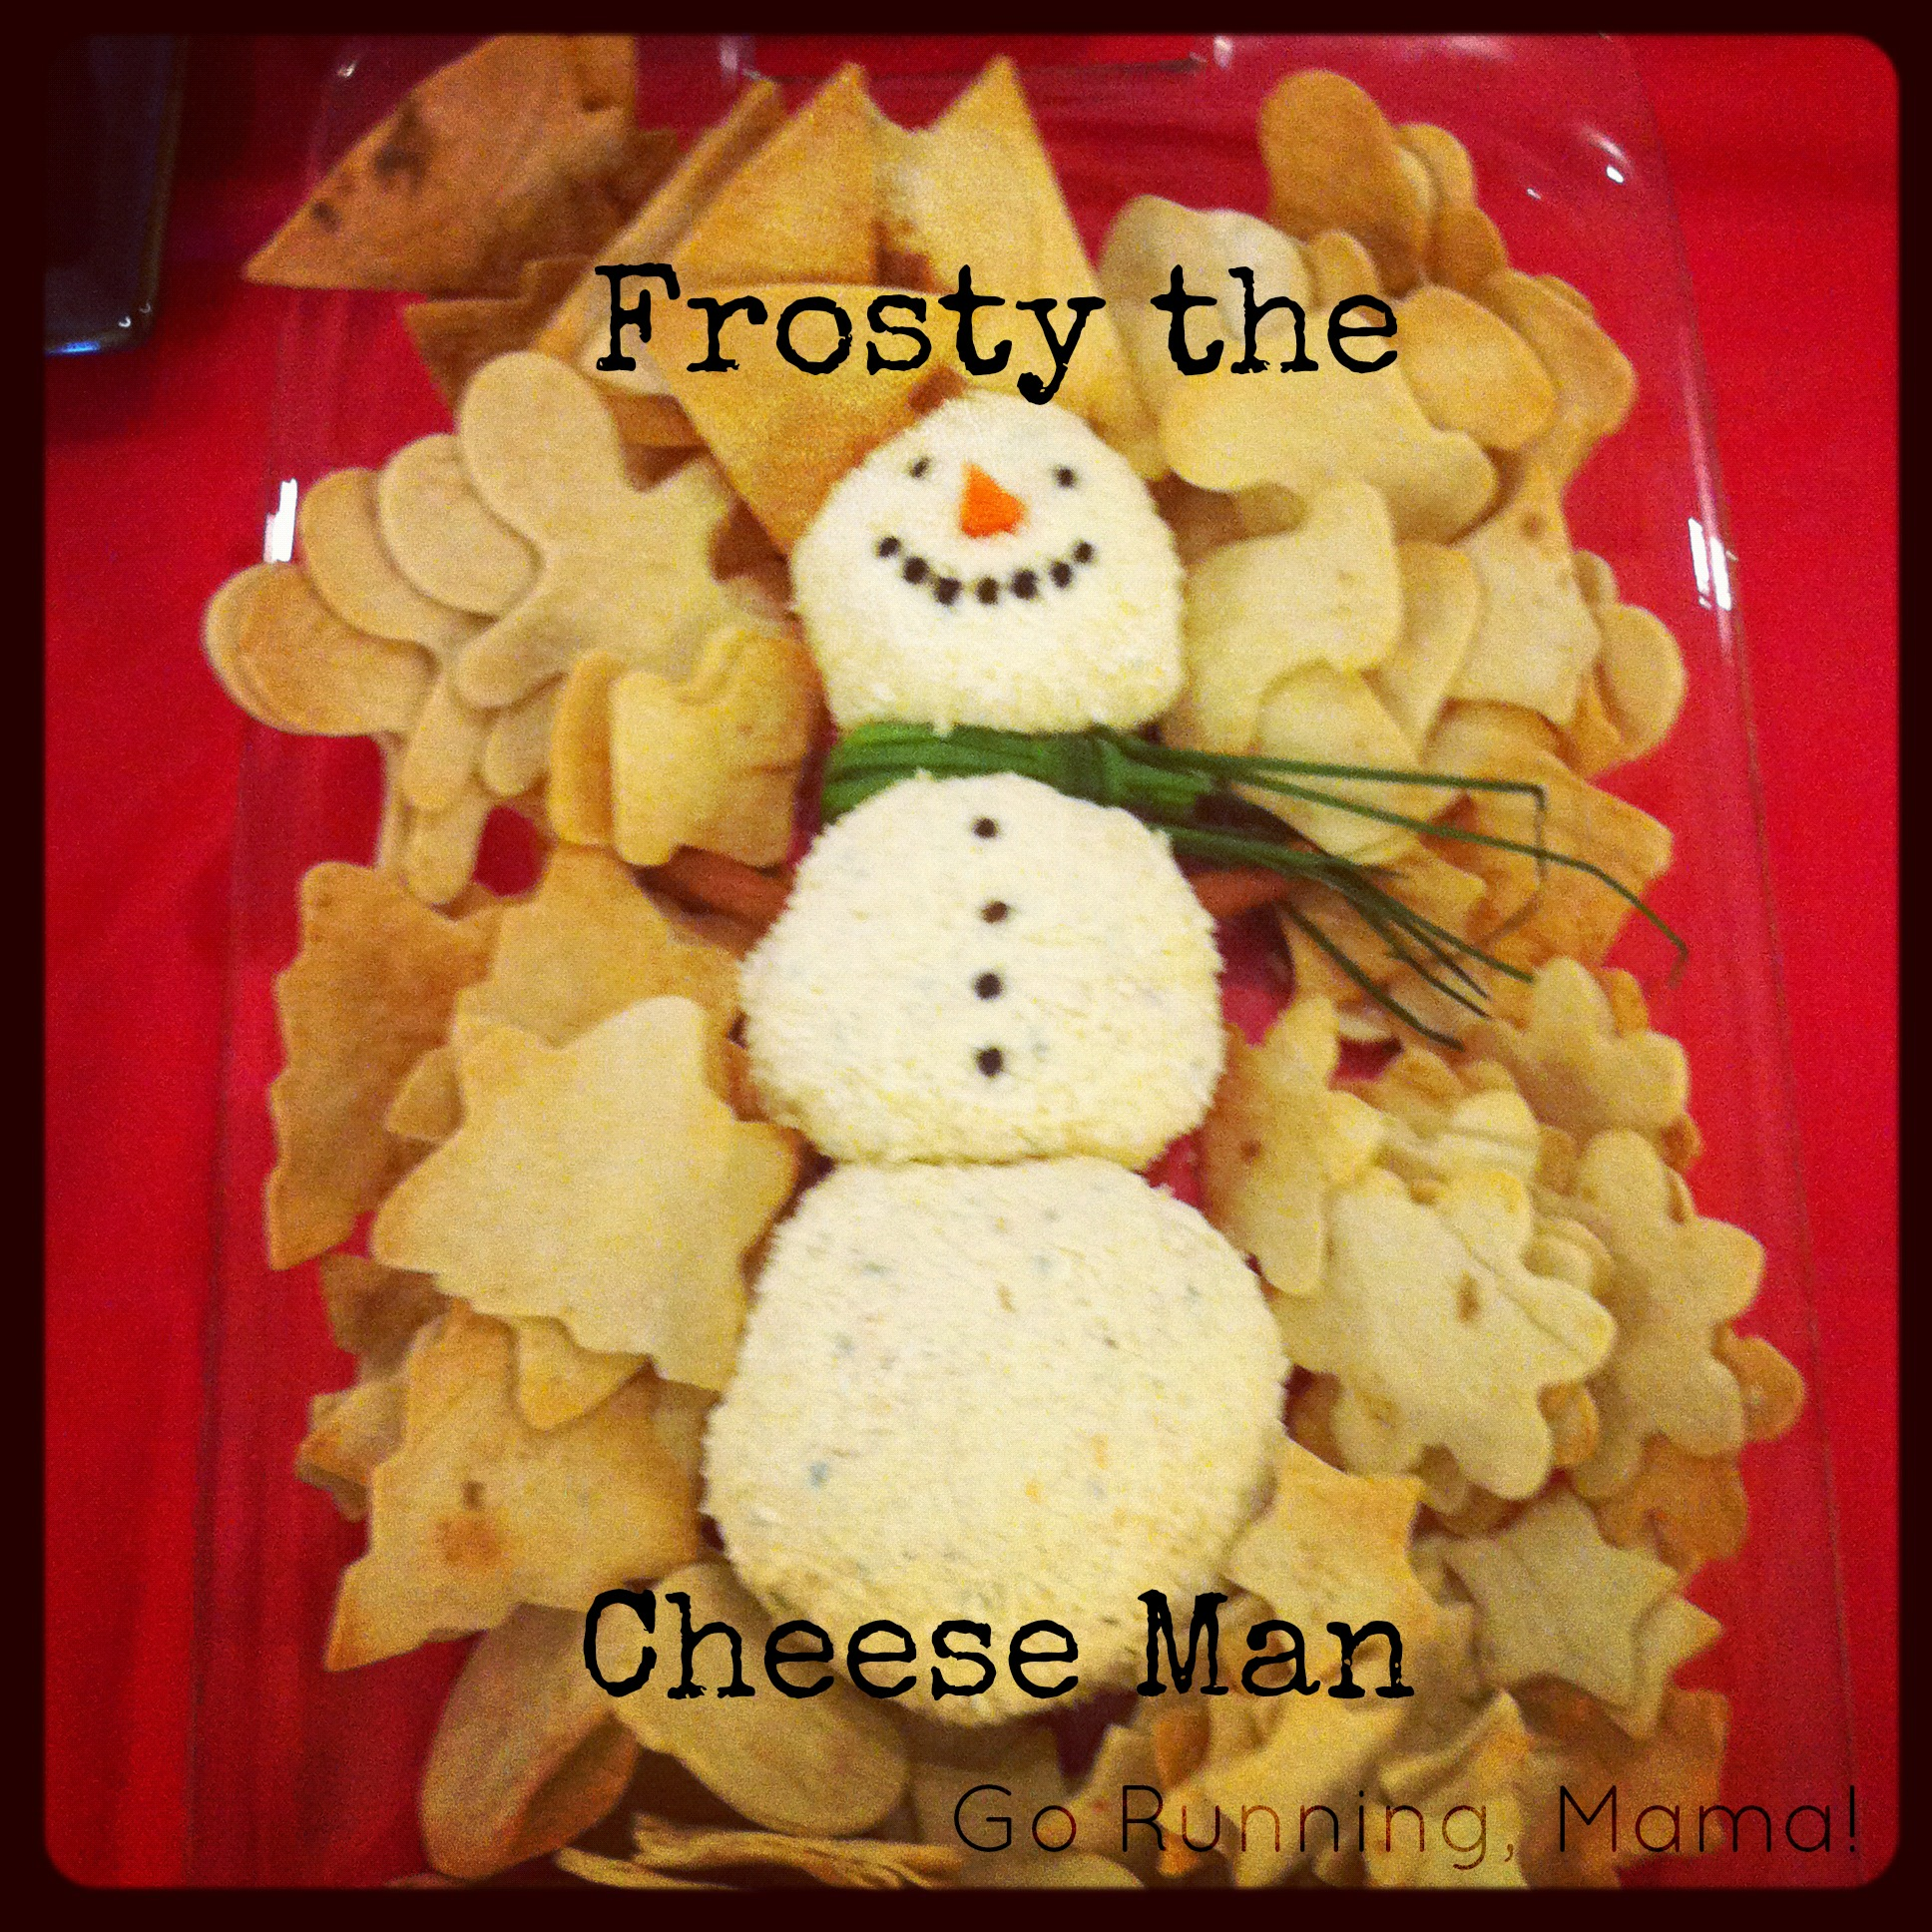 frosty the cheese man snowman cheese ball with hand cut holiday